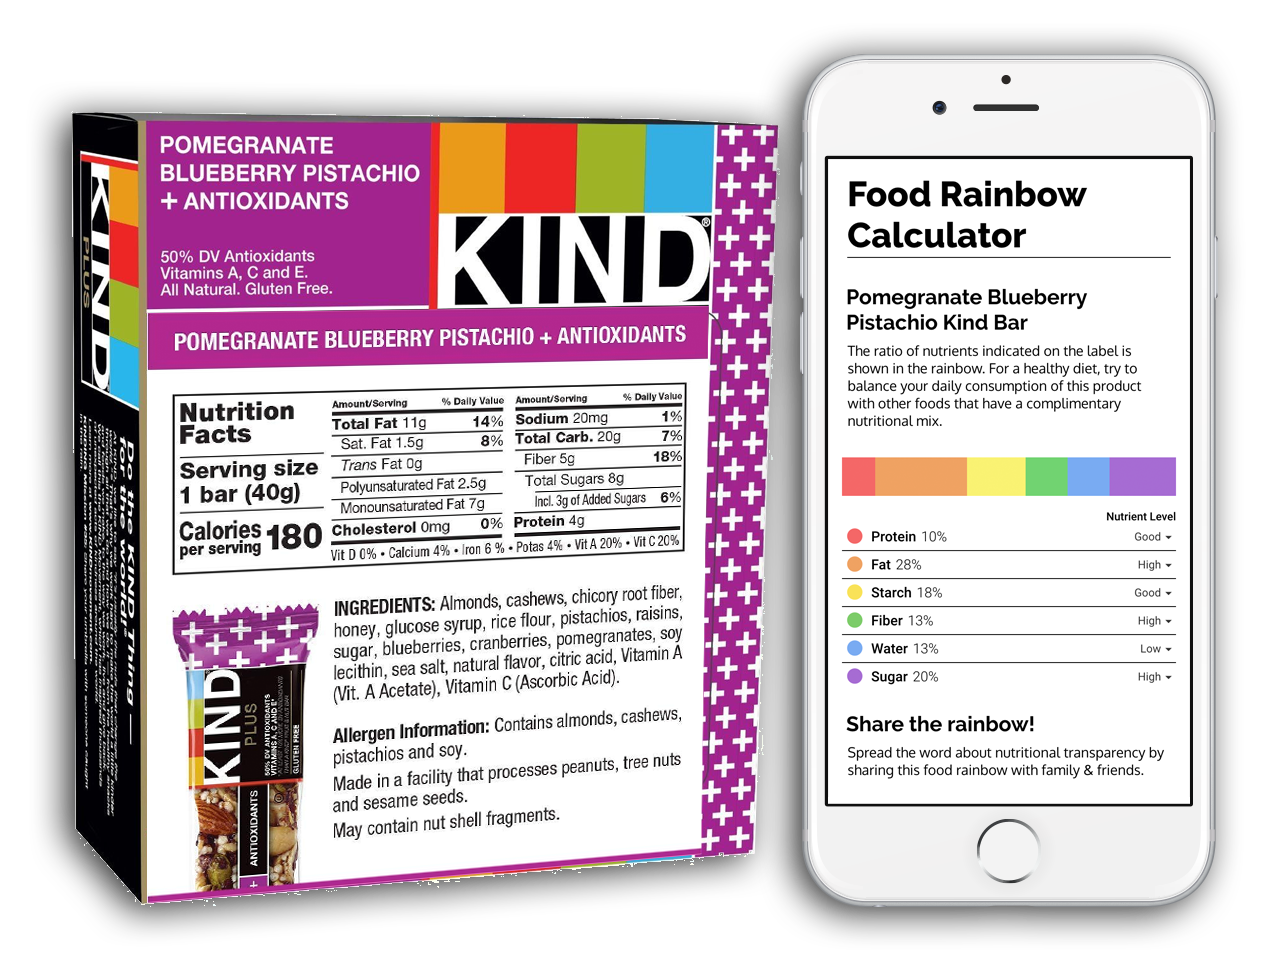 Food Rainbow Calculator with Package